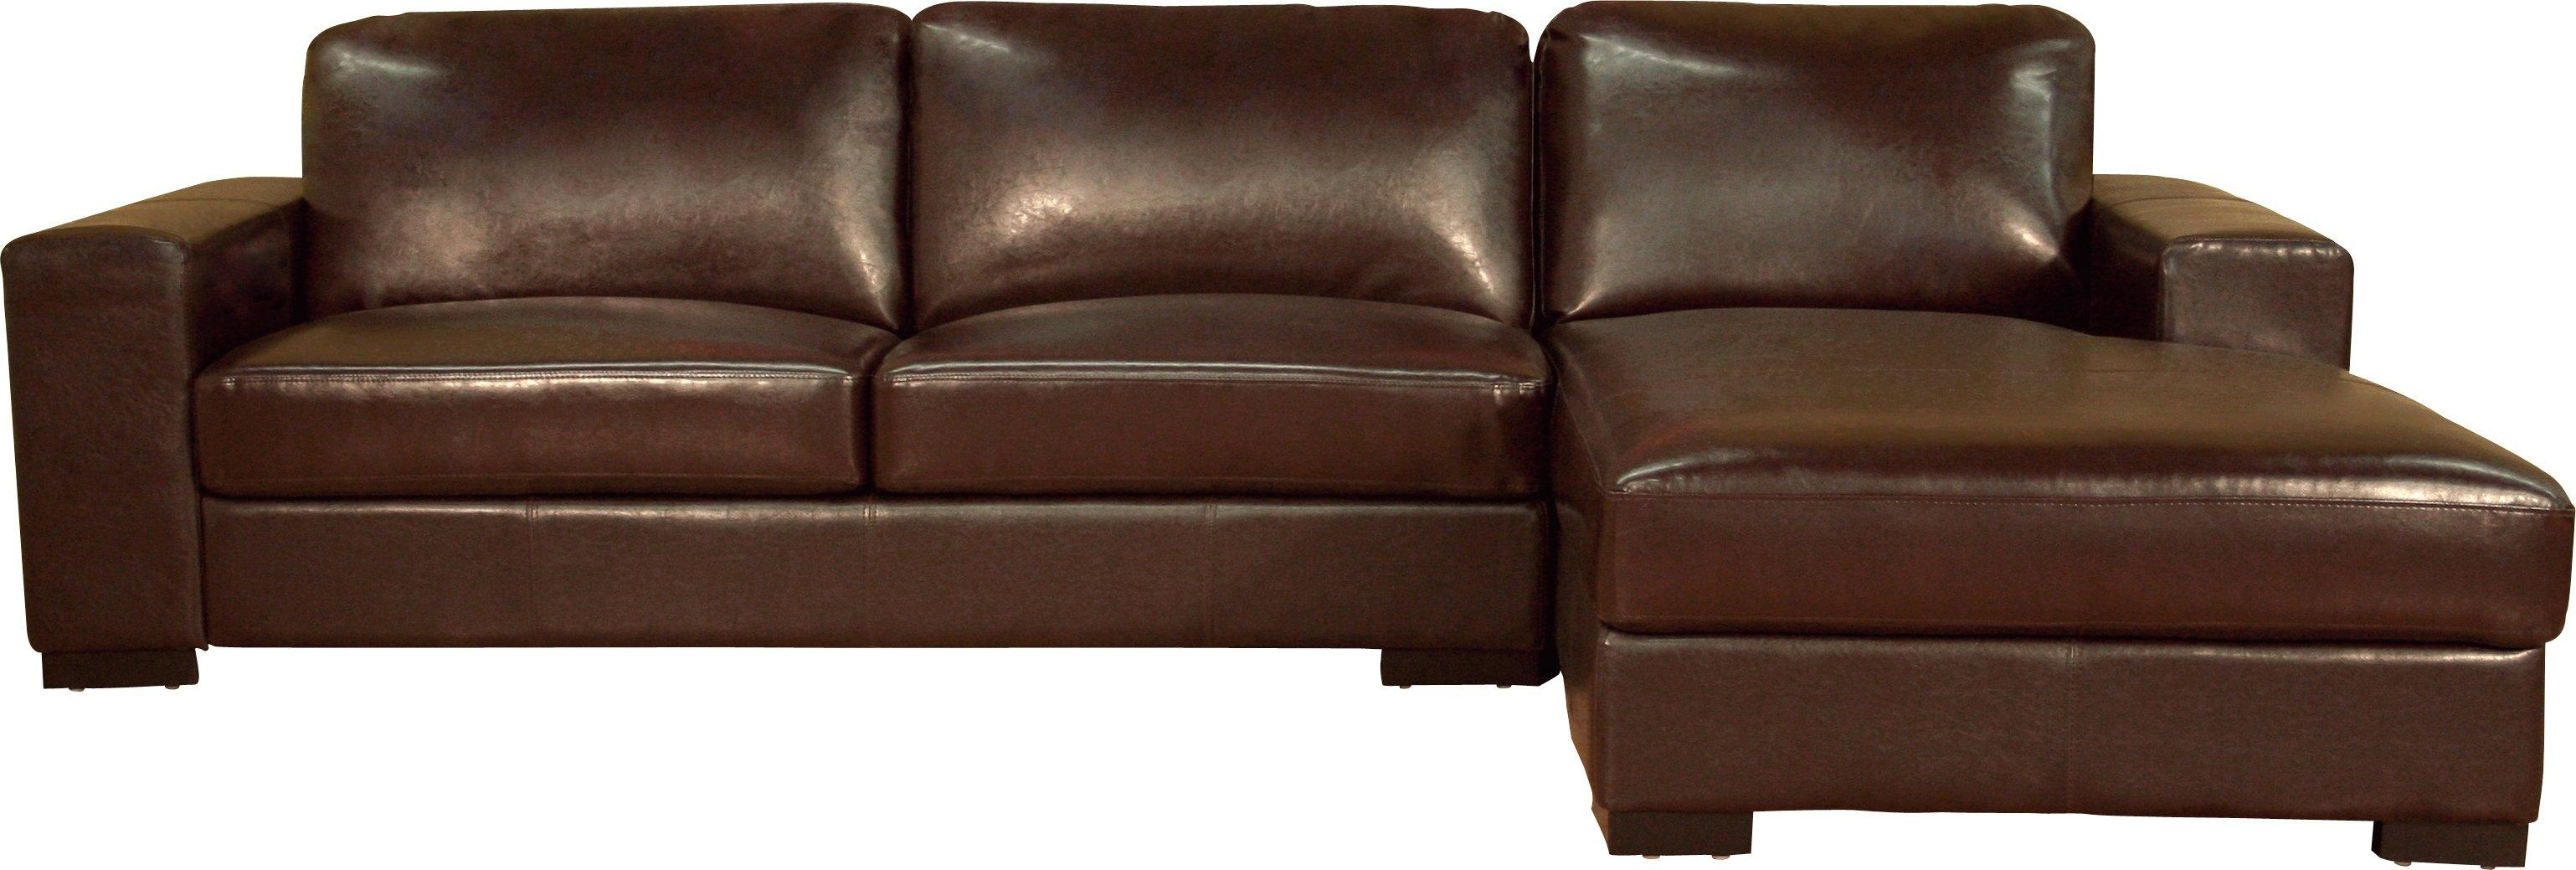 Furniture: Ikea Sectional Sofa Sleeper | Sectional Sleeper Sofa Inside Sleeper Sectional Sofa Ikea (Image 7 of 20)